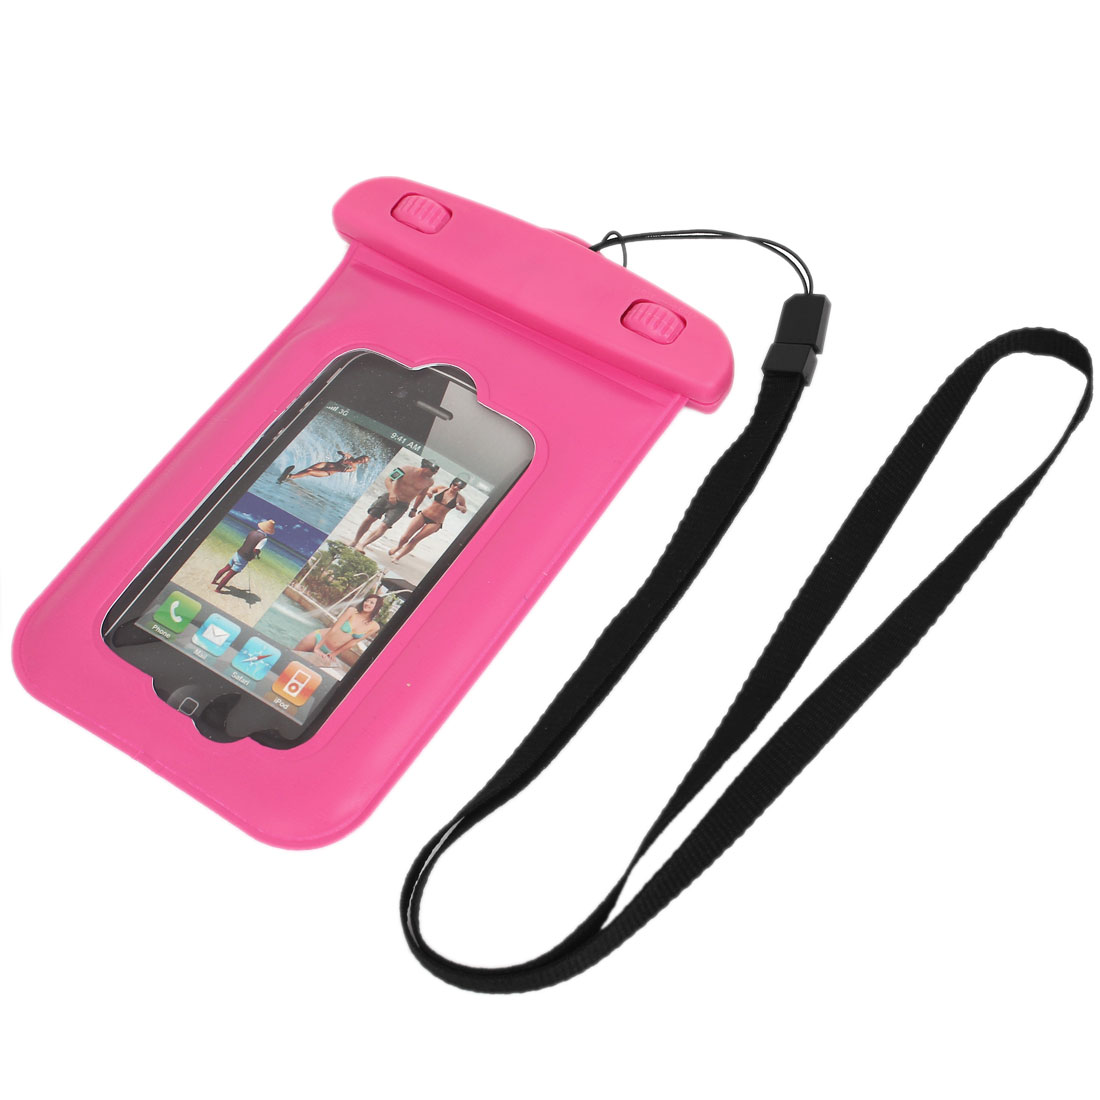 Waterproof Bag Holder Pouch Case Pink for iPhone 4/4S w Neck Strap